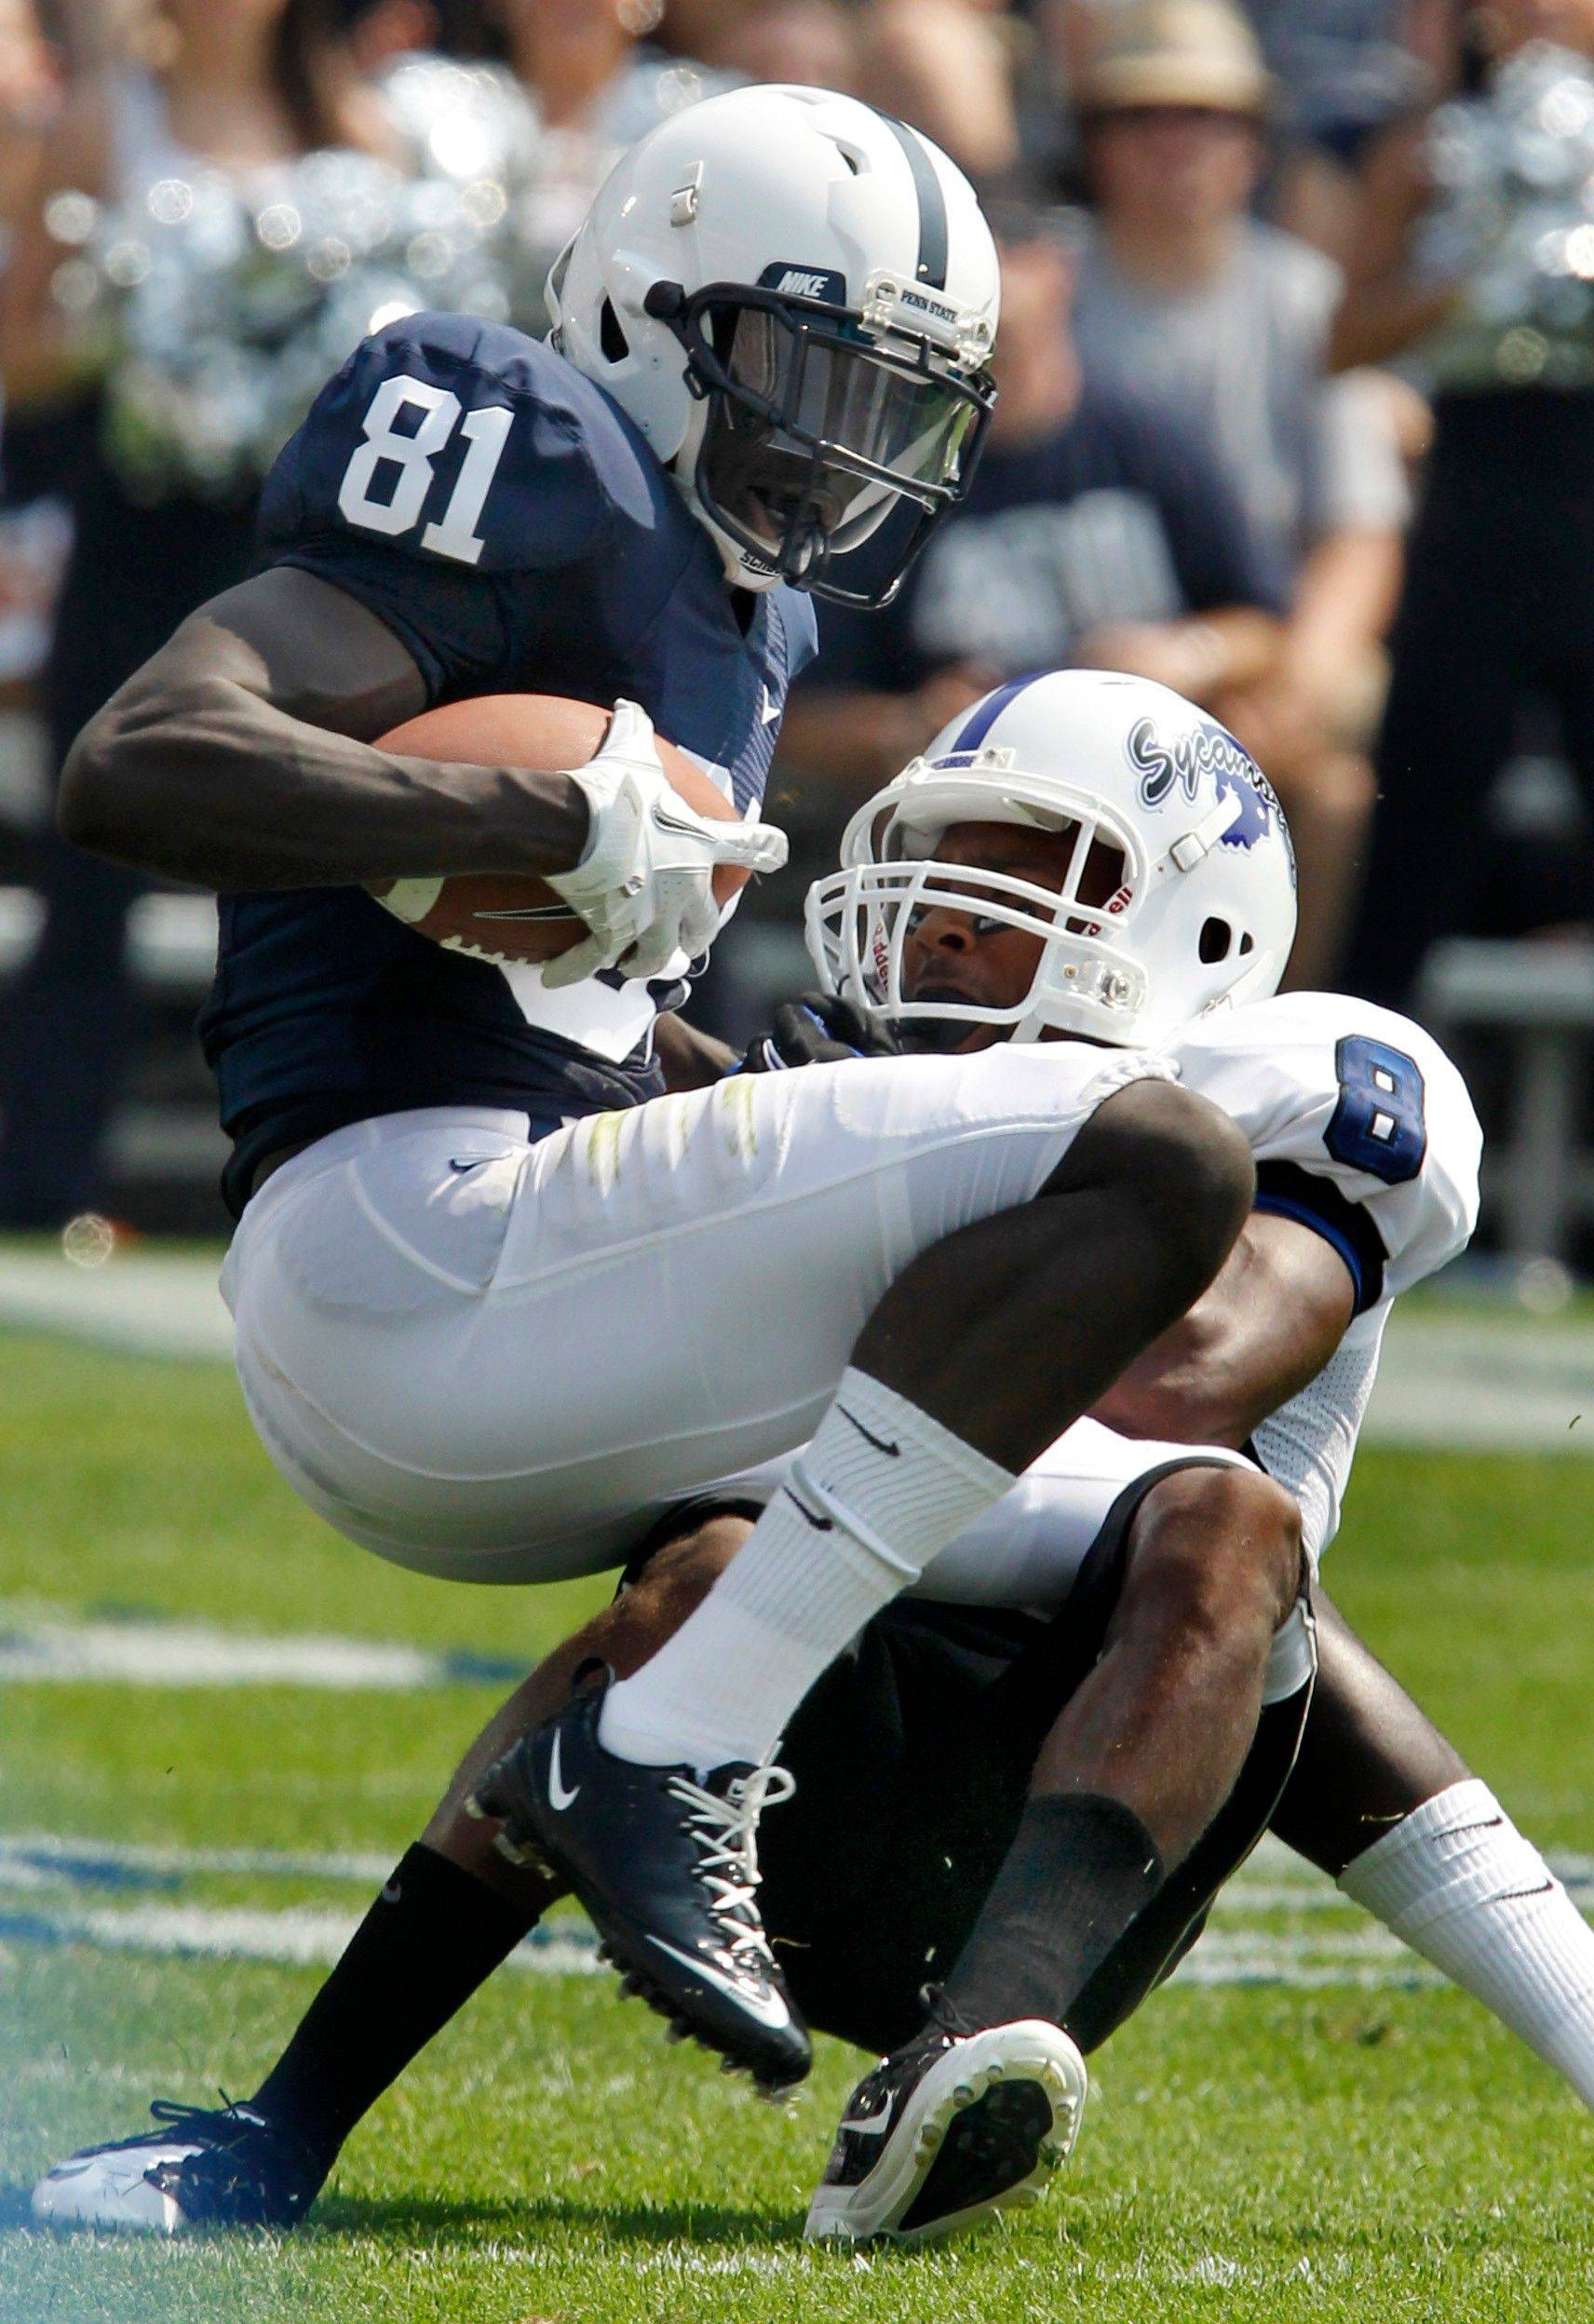 Penn State receiver Shawney Kersey is tackled by Indiana State defender Larry Carter after making after a catch during the third quarter Saturday.